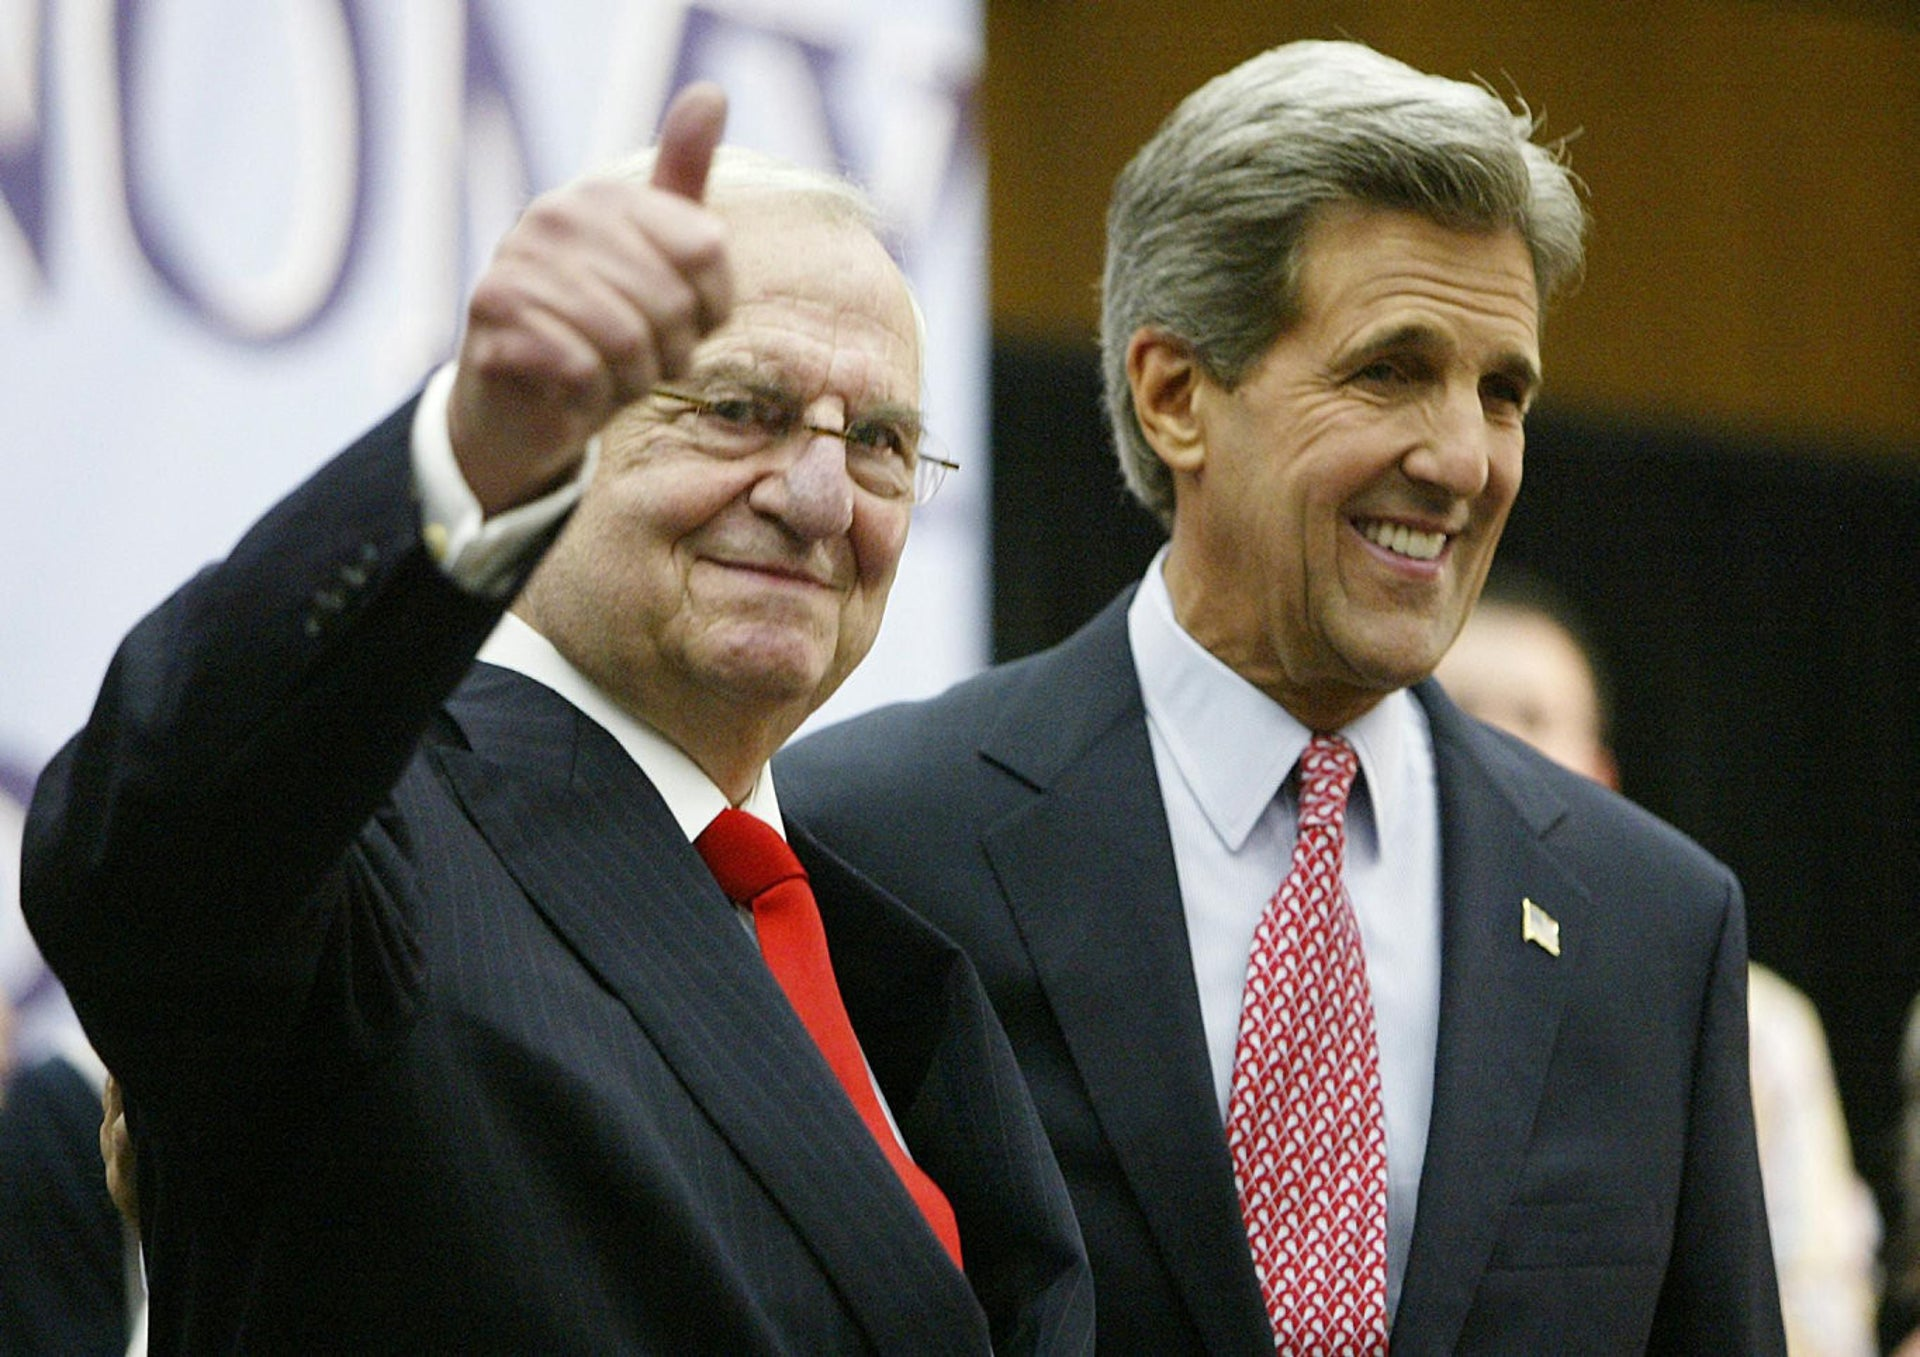 Chrysler CEO Lee Iacocca, left, with then-Democratic presidential nominee John Kerry in 2004. Nessa Rapoport worked with Iacocca on his best-selling memoir in the mid-1980s.